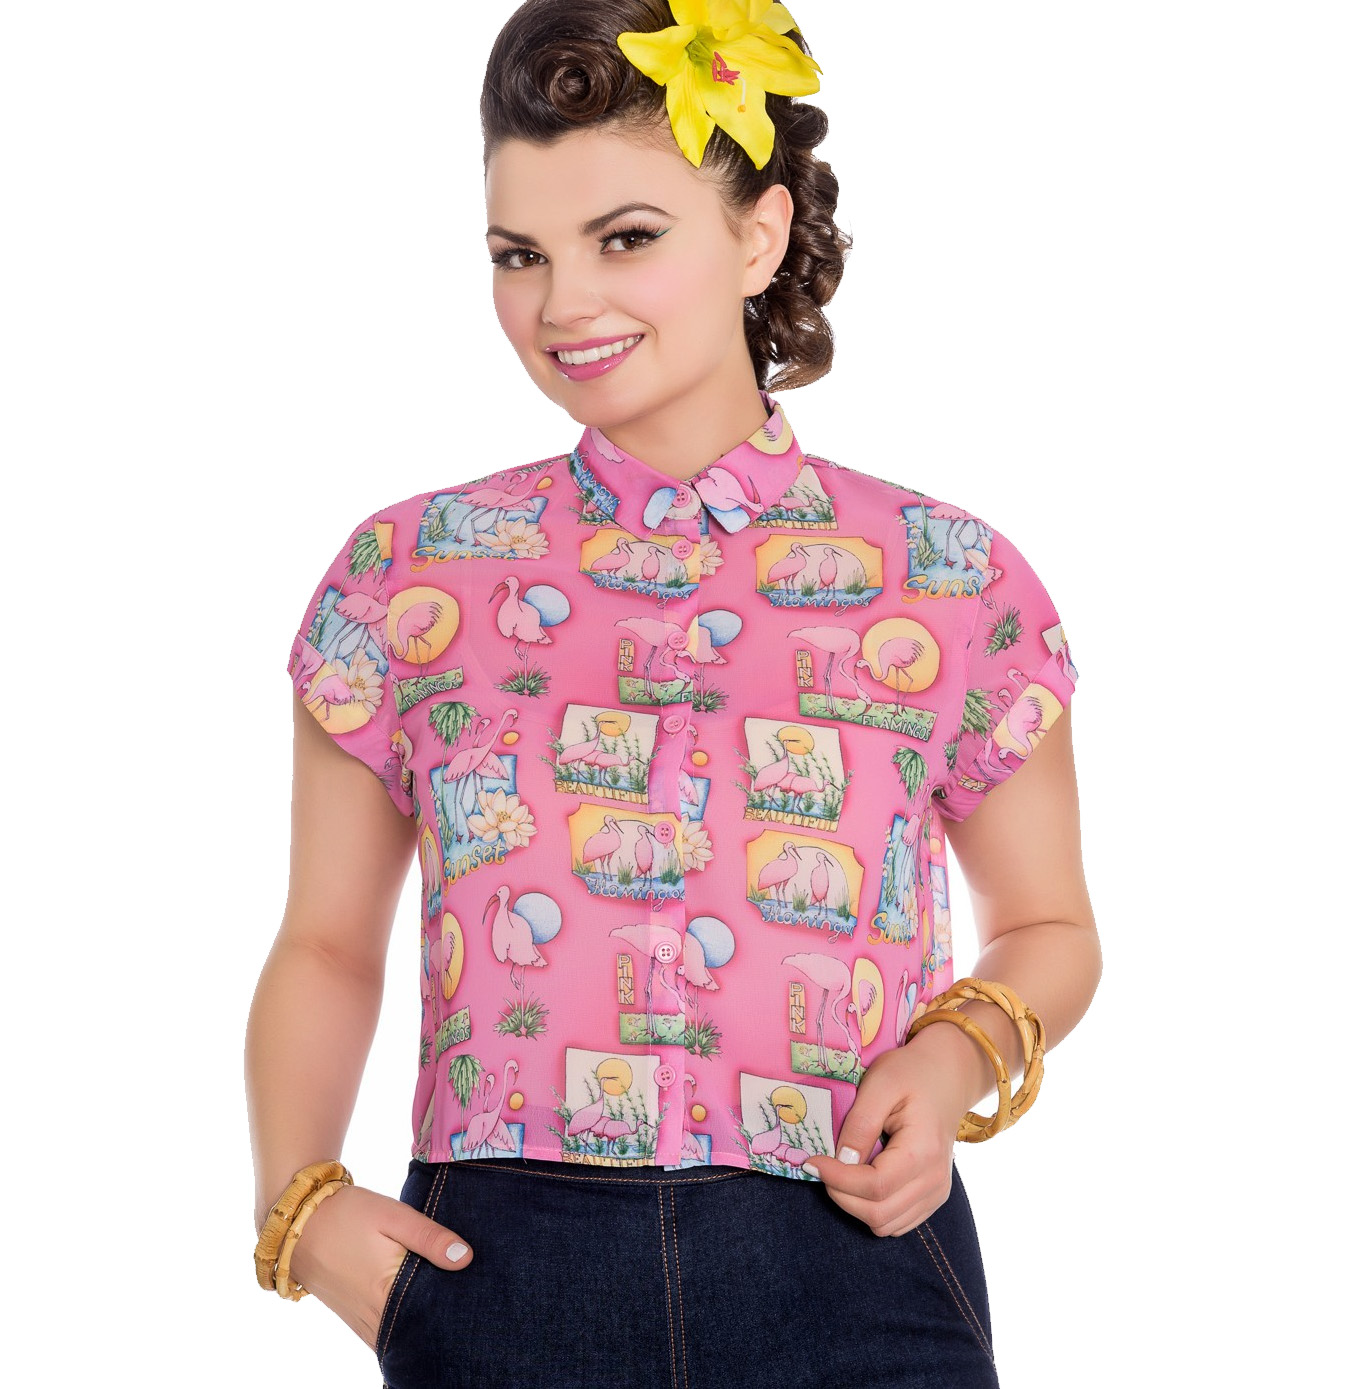 thumbnail 26 - Hell Bunny 50s Retro Top Pink Flamingo MAXINE Cropped Blouse Shirt All Sizes